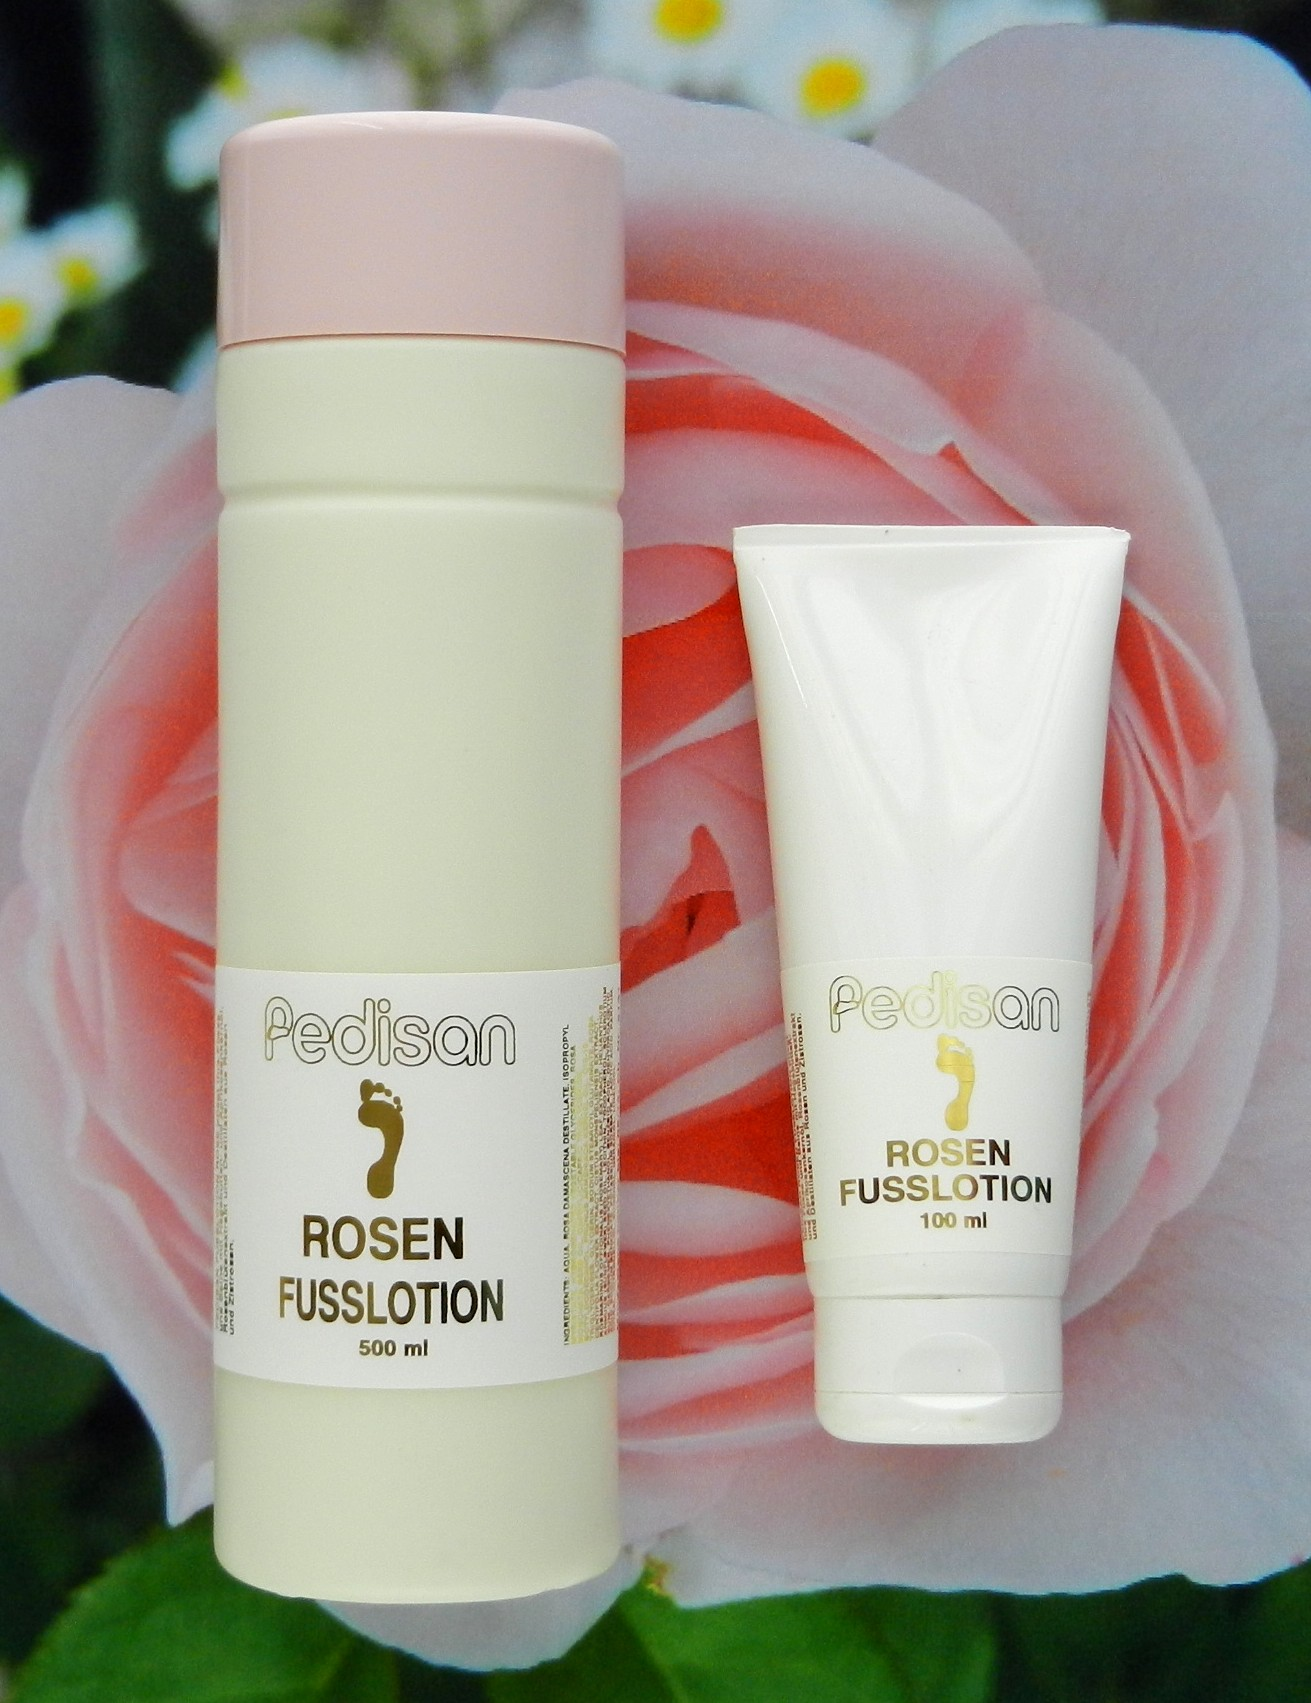 ROSEN FUSSLOTION